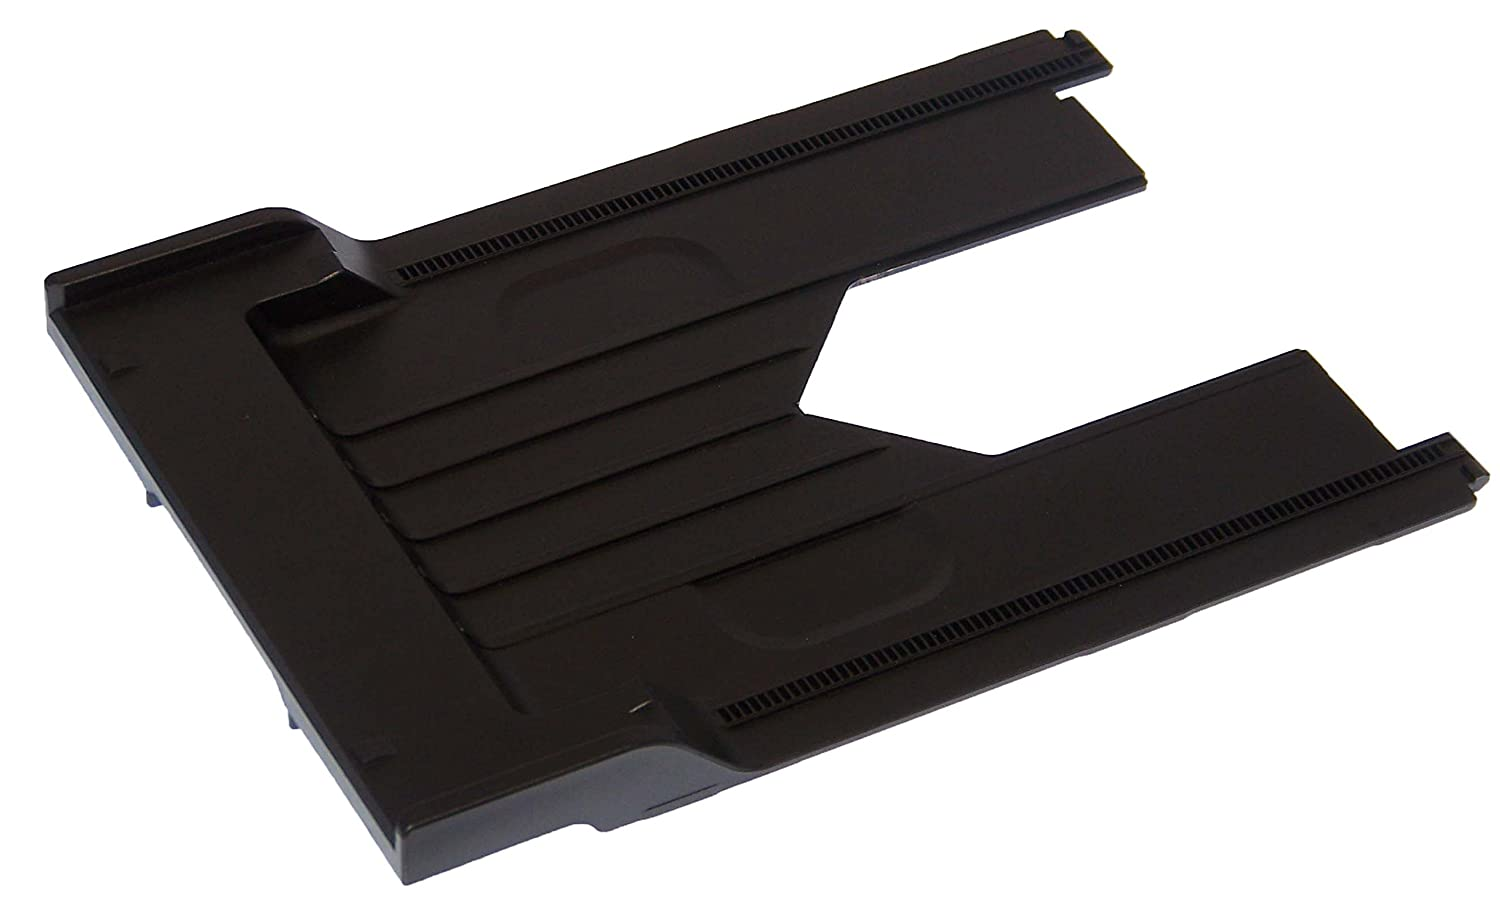 OEM Epson Stacker Assembly / Output Tray Specifically For: XP-760, XP-860, XP-620, XP-630